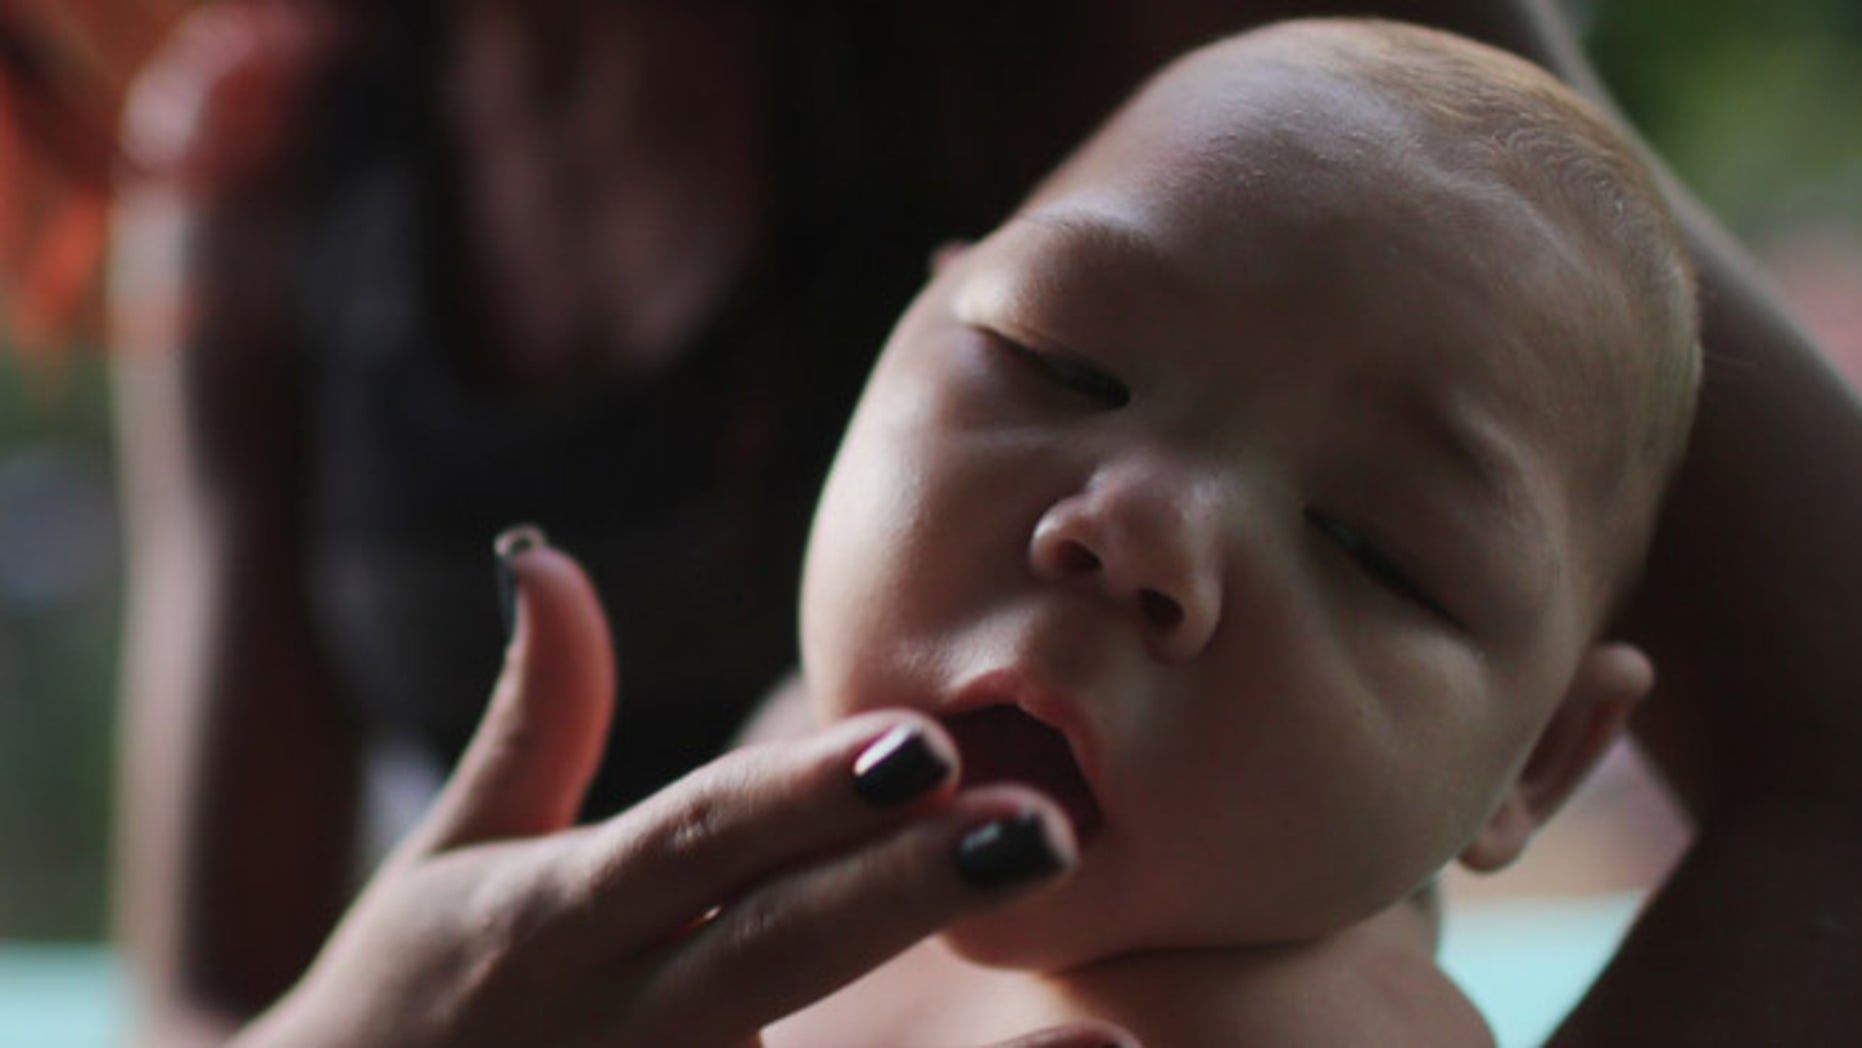 RECIFE, BRAZIL - JANUARY 25:  Estafany Perreira holds her nephew David Henrique Ferreira, 5 months, who has microcephaly, on January 25, 2016 in Recife, Brazil. In the last four months, authorities have recorded close to 4,000 cases in Brazil in which the mosquito-borne Zika virus may have led to microcephaly in infants. Microcephaly results in newborns with abnormally small heads and is associated with various disorders including decreased brain development. According to the World Health Organization (WHO), the Zika virus outbreak is likely to further spread in South, Central and North America. At least twelve cases of Zika in the United States have now been confirmed by the CDC.  (Photo by Mario Tama/Getty Images)